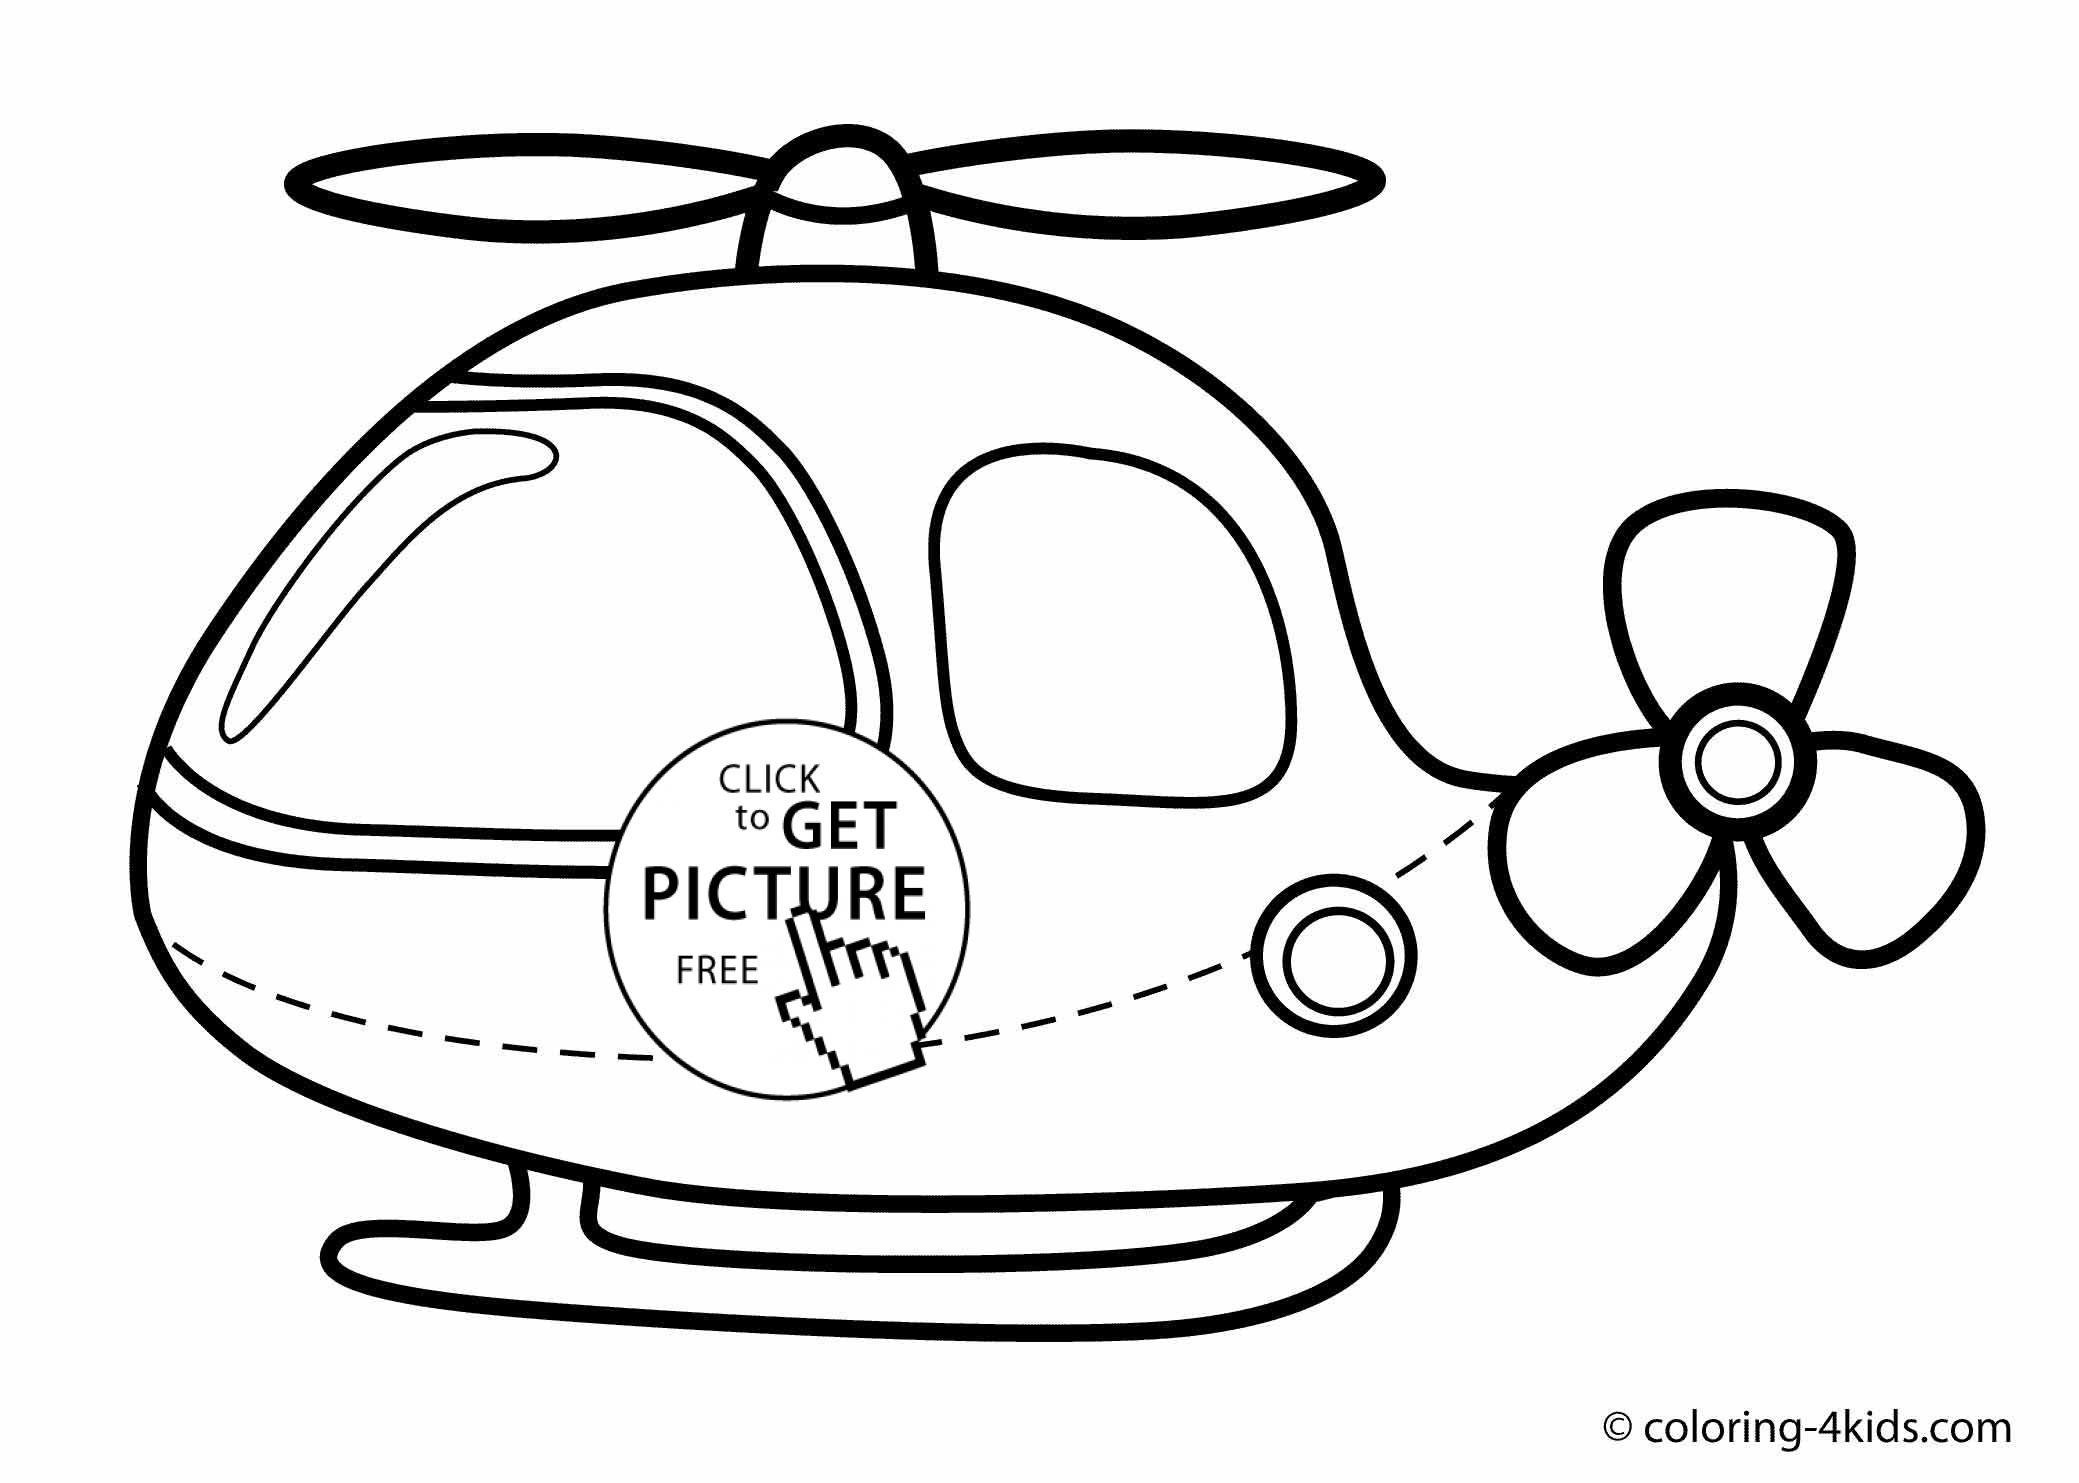 Helicopter Coloring Pages Helicopter Coloring Book For